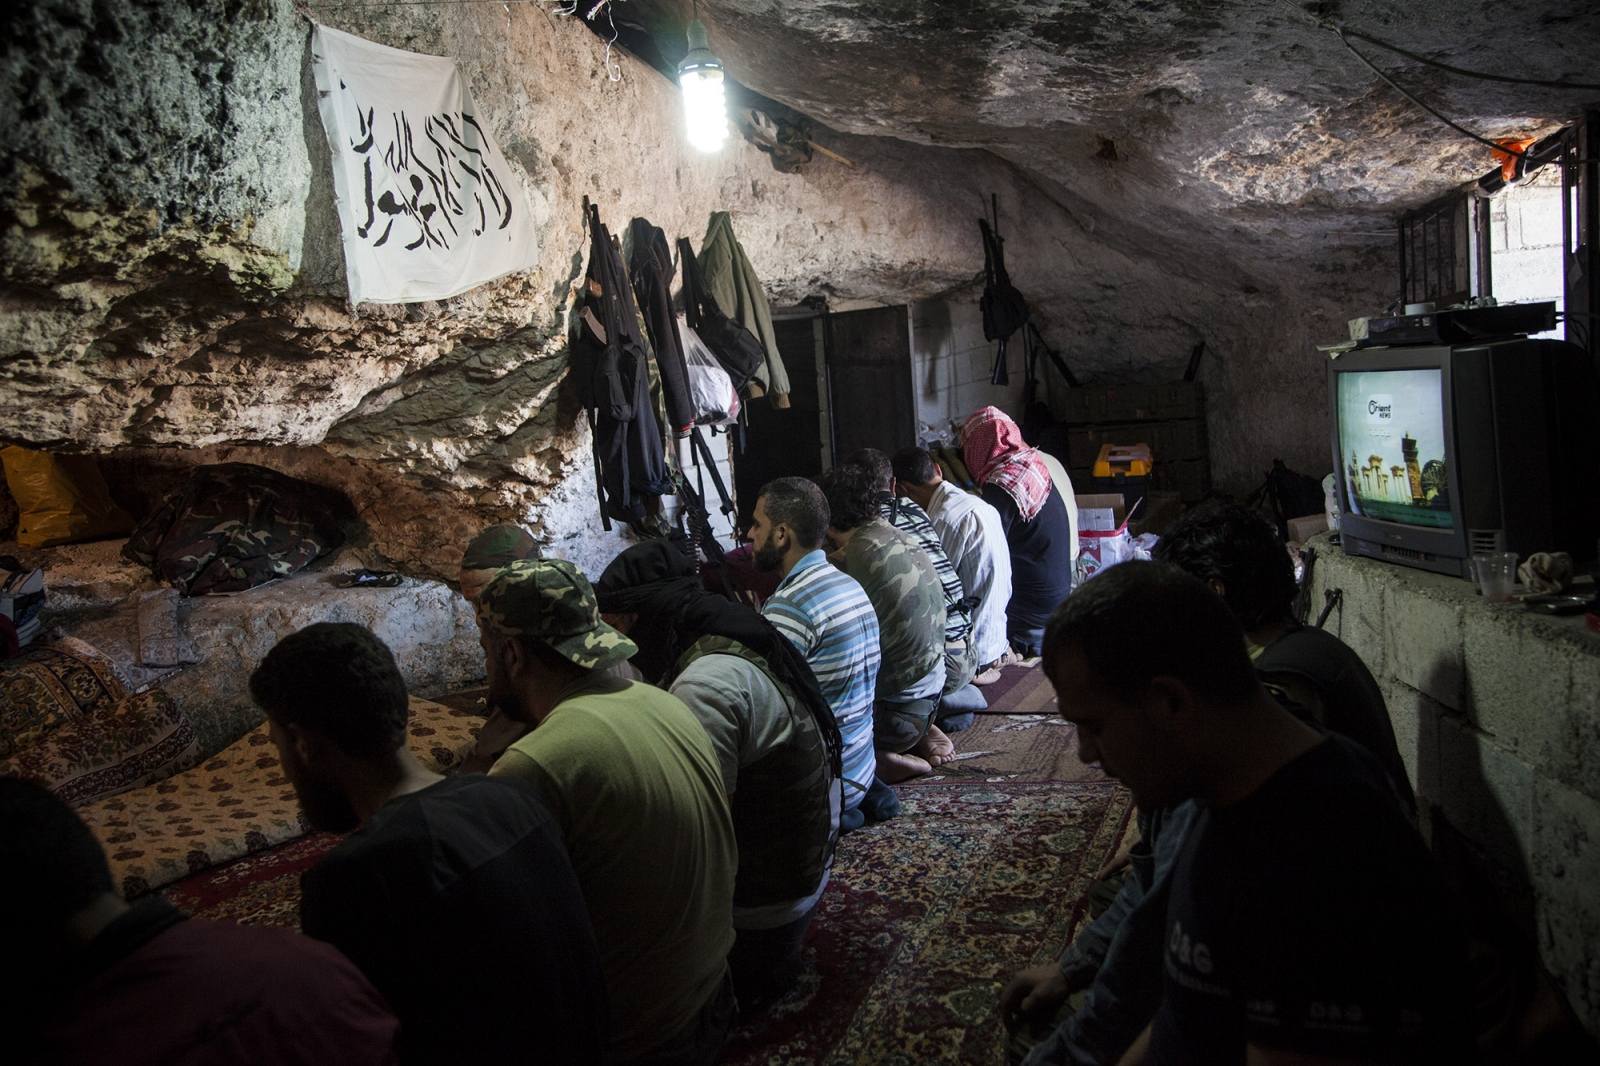 Free Syrian Army fighters pray in a cave in the mountains outside of Sarmadda, a town near the Syrian border, on Thursday, June 7, 2012. The FSA are often ill equipped to fight against tanks, Grad rockets and mortars used by the Syrian Army.